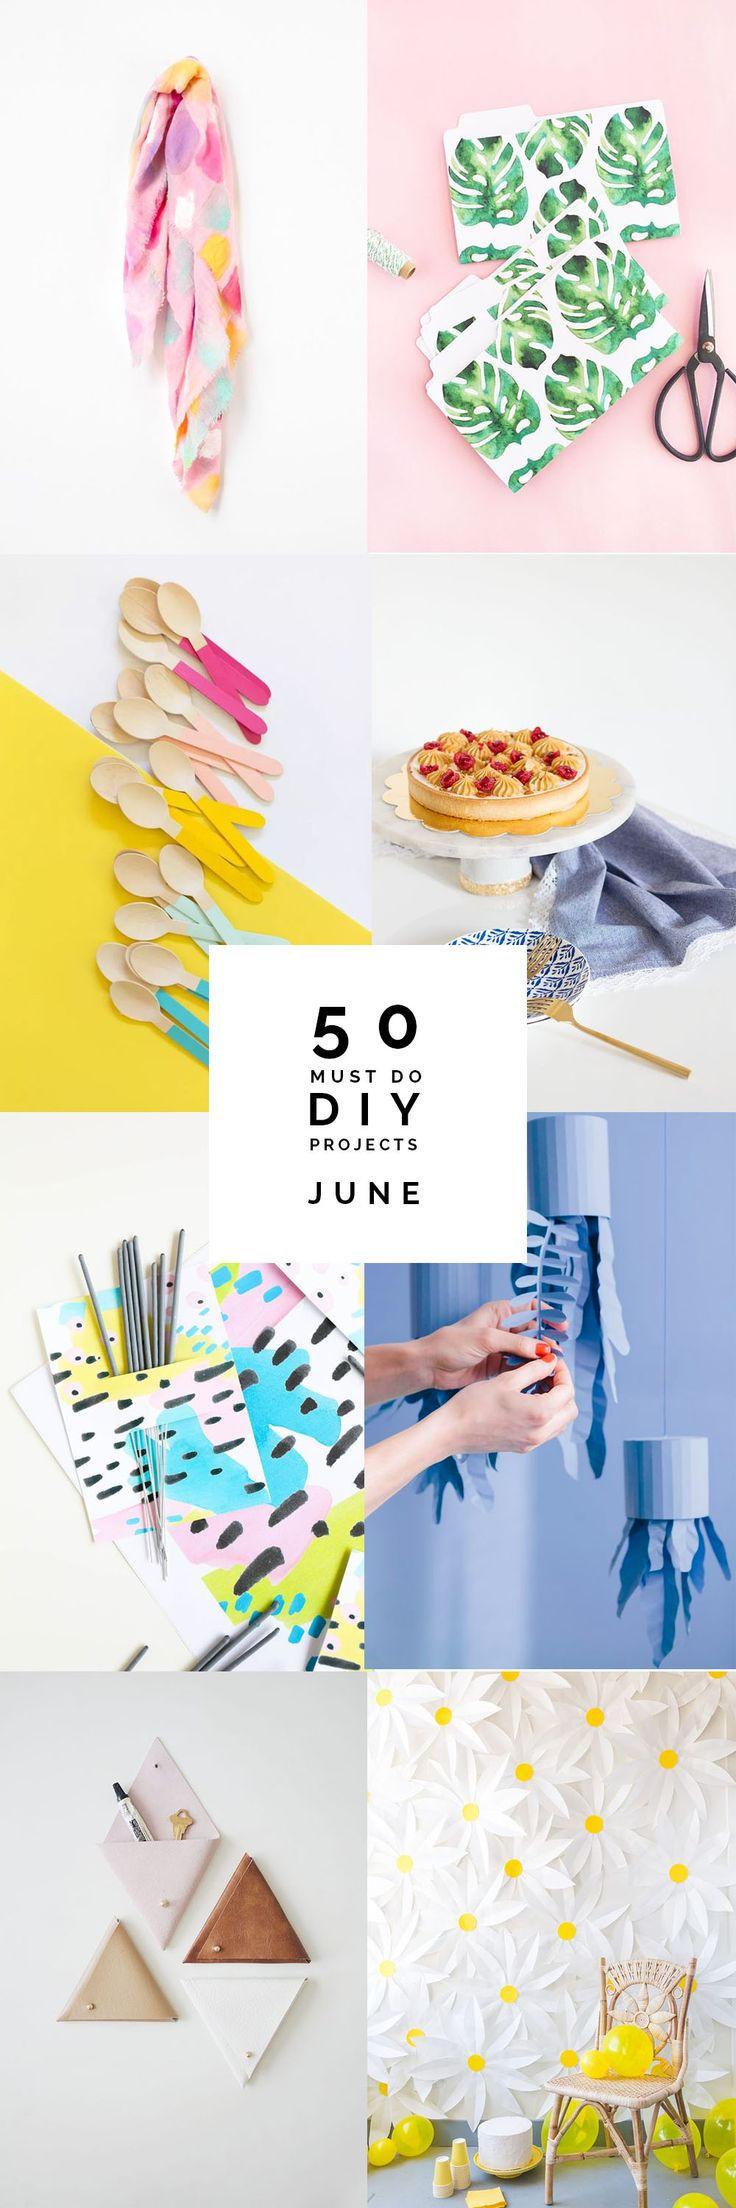 It's that time again. Happy July! I'm excited to start a fresh new month and I'm getting some summer inspiration rounding up all these gorgeous DIY things that have been posted over the last 30 days. I've been amazed by the ingenuity and originality of all the tutorials I've seen over the past month. I'm feeling so energised …